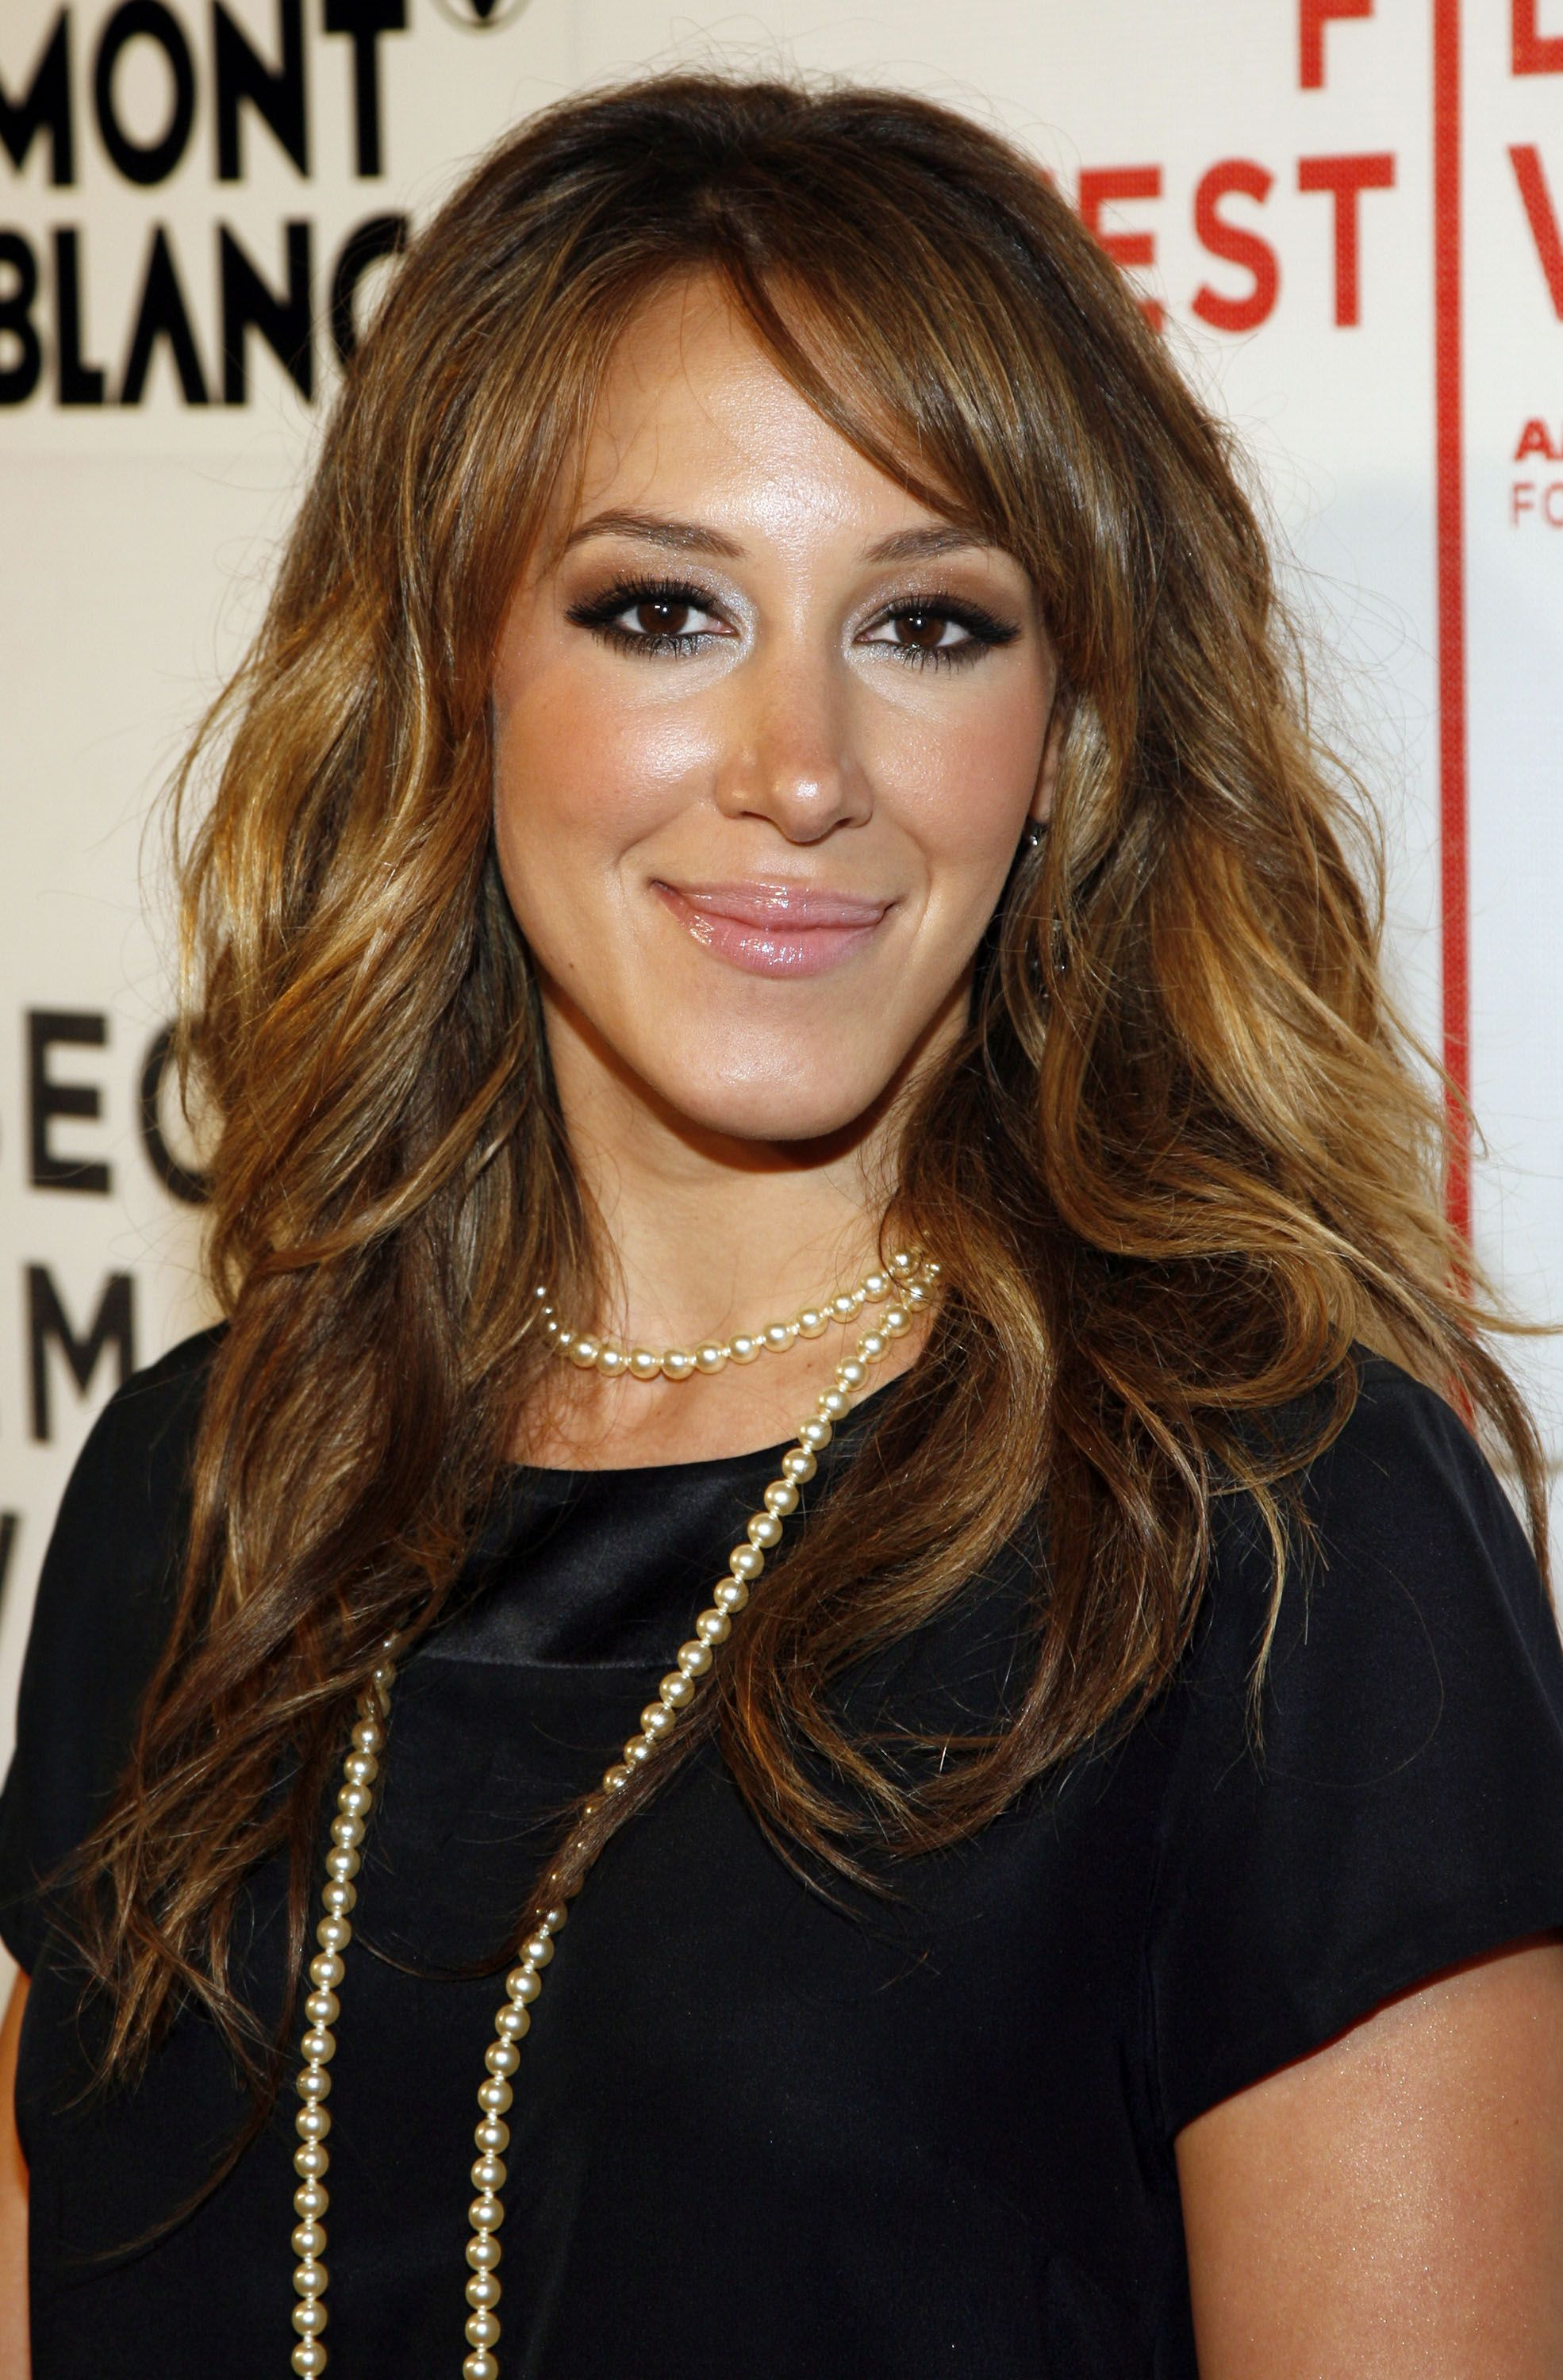 haylie duff Hillary duff's sister. Acted in one of the ...